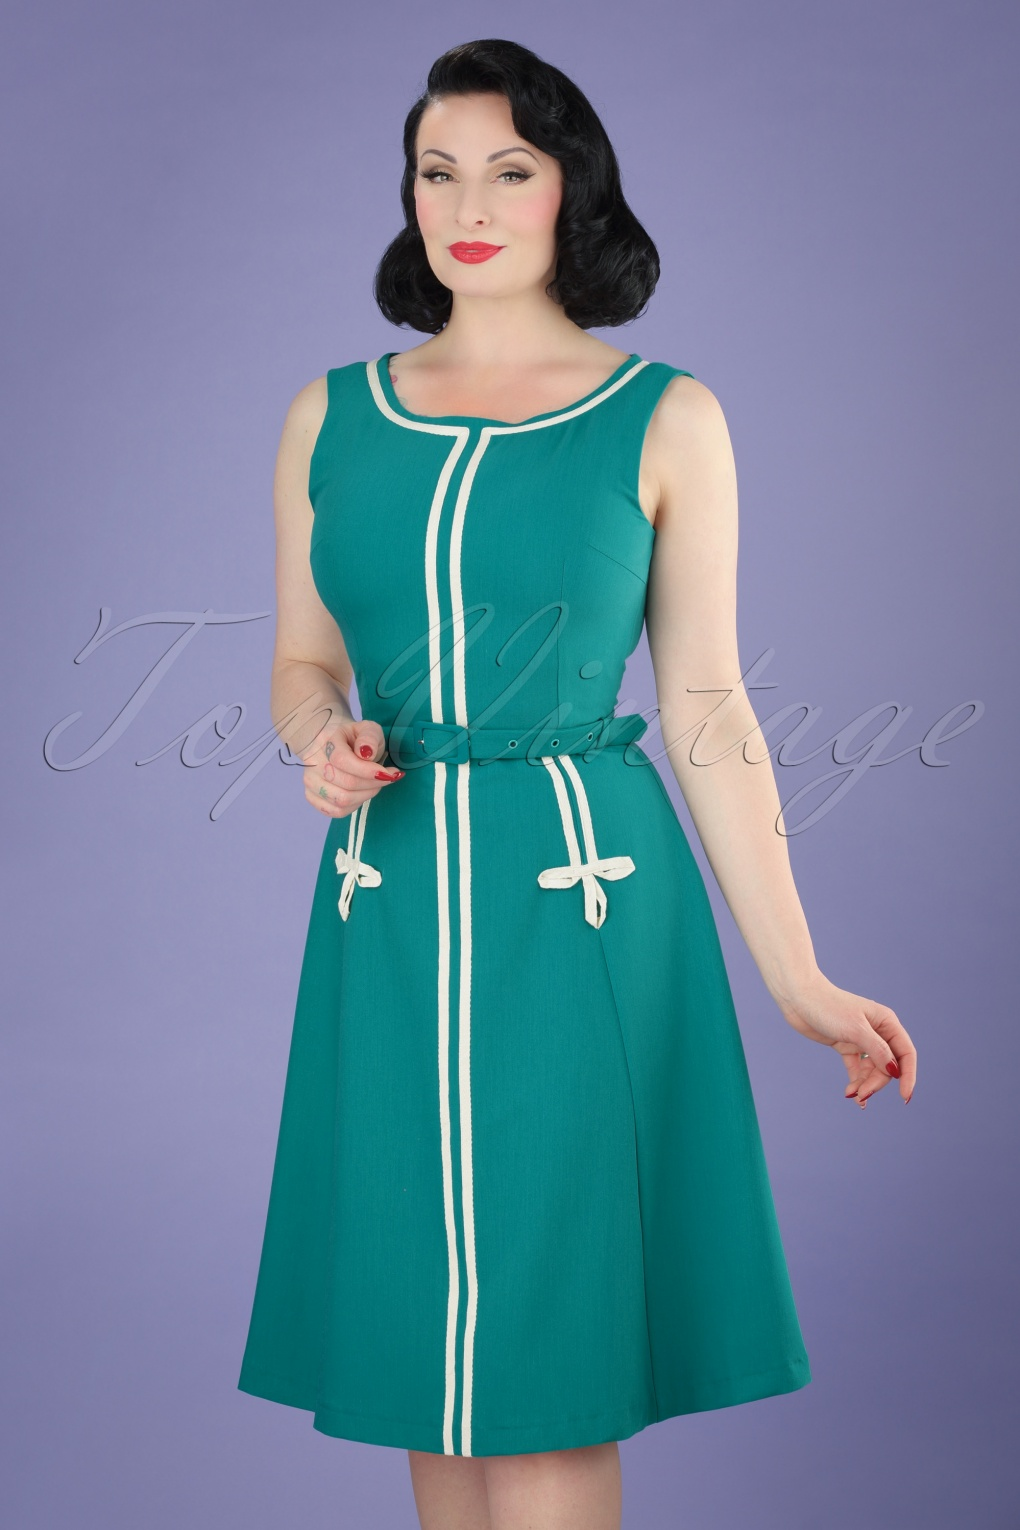 1960s Style Dresses- Retro Inspired Fashion 60s Iris A-Line Dress in Teal £67.69 AT vintagedancer.com